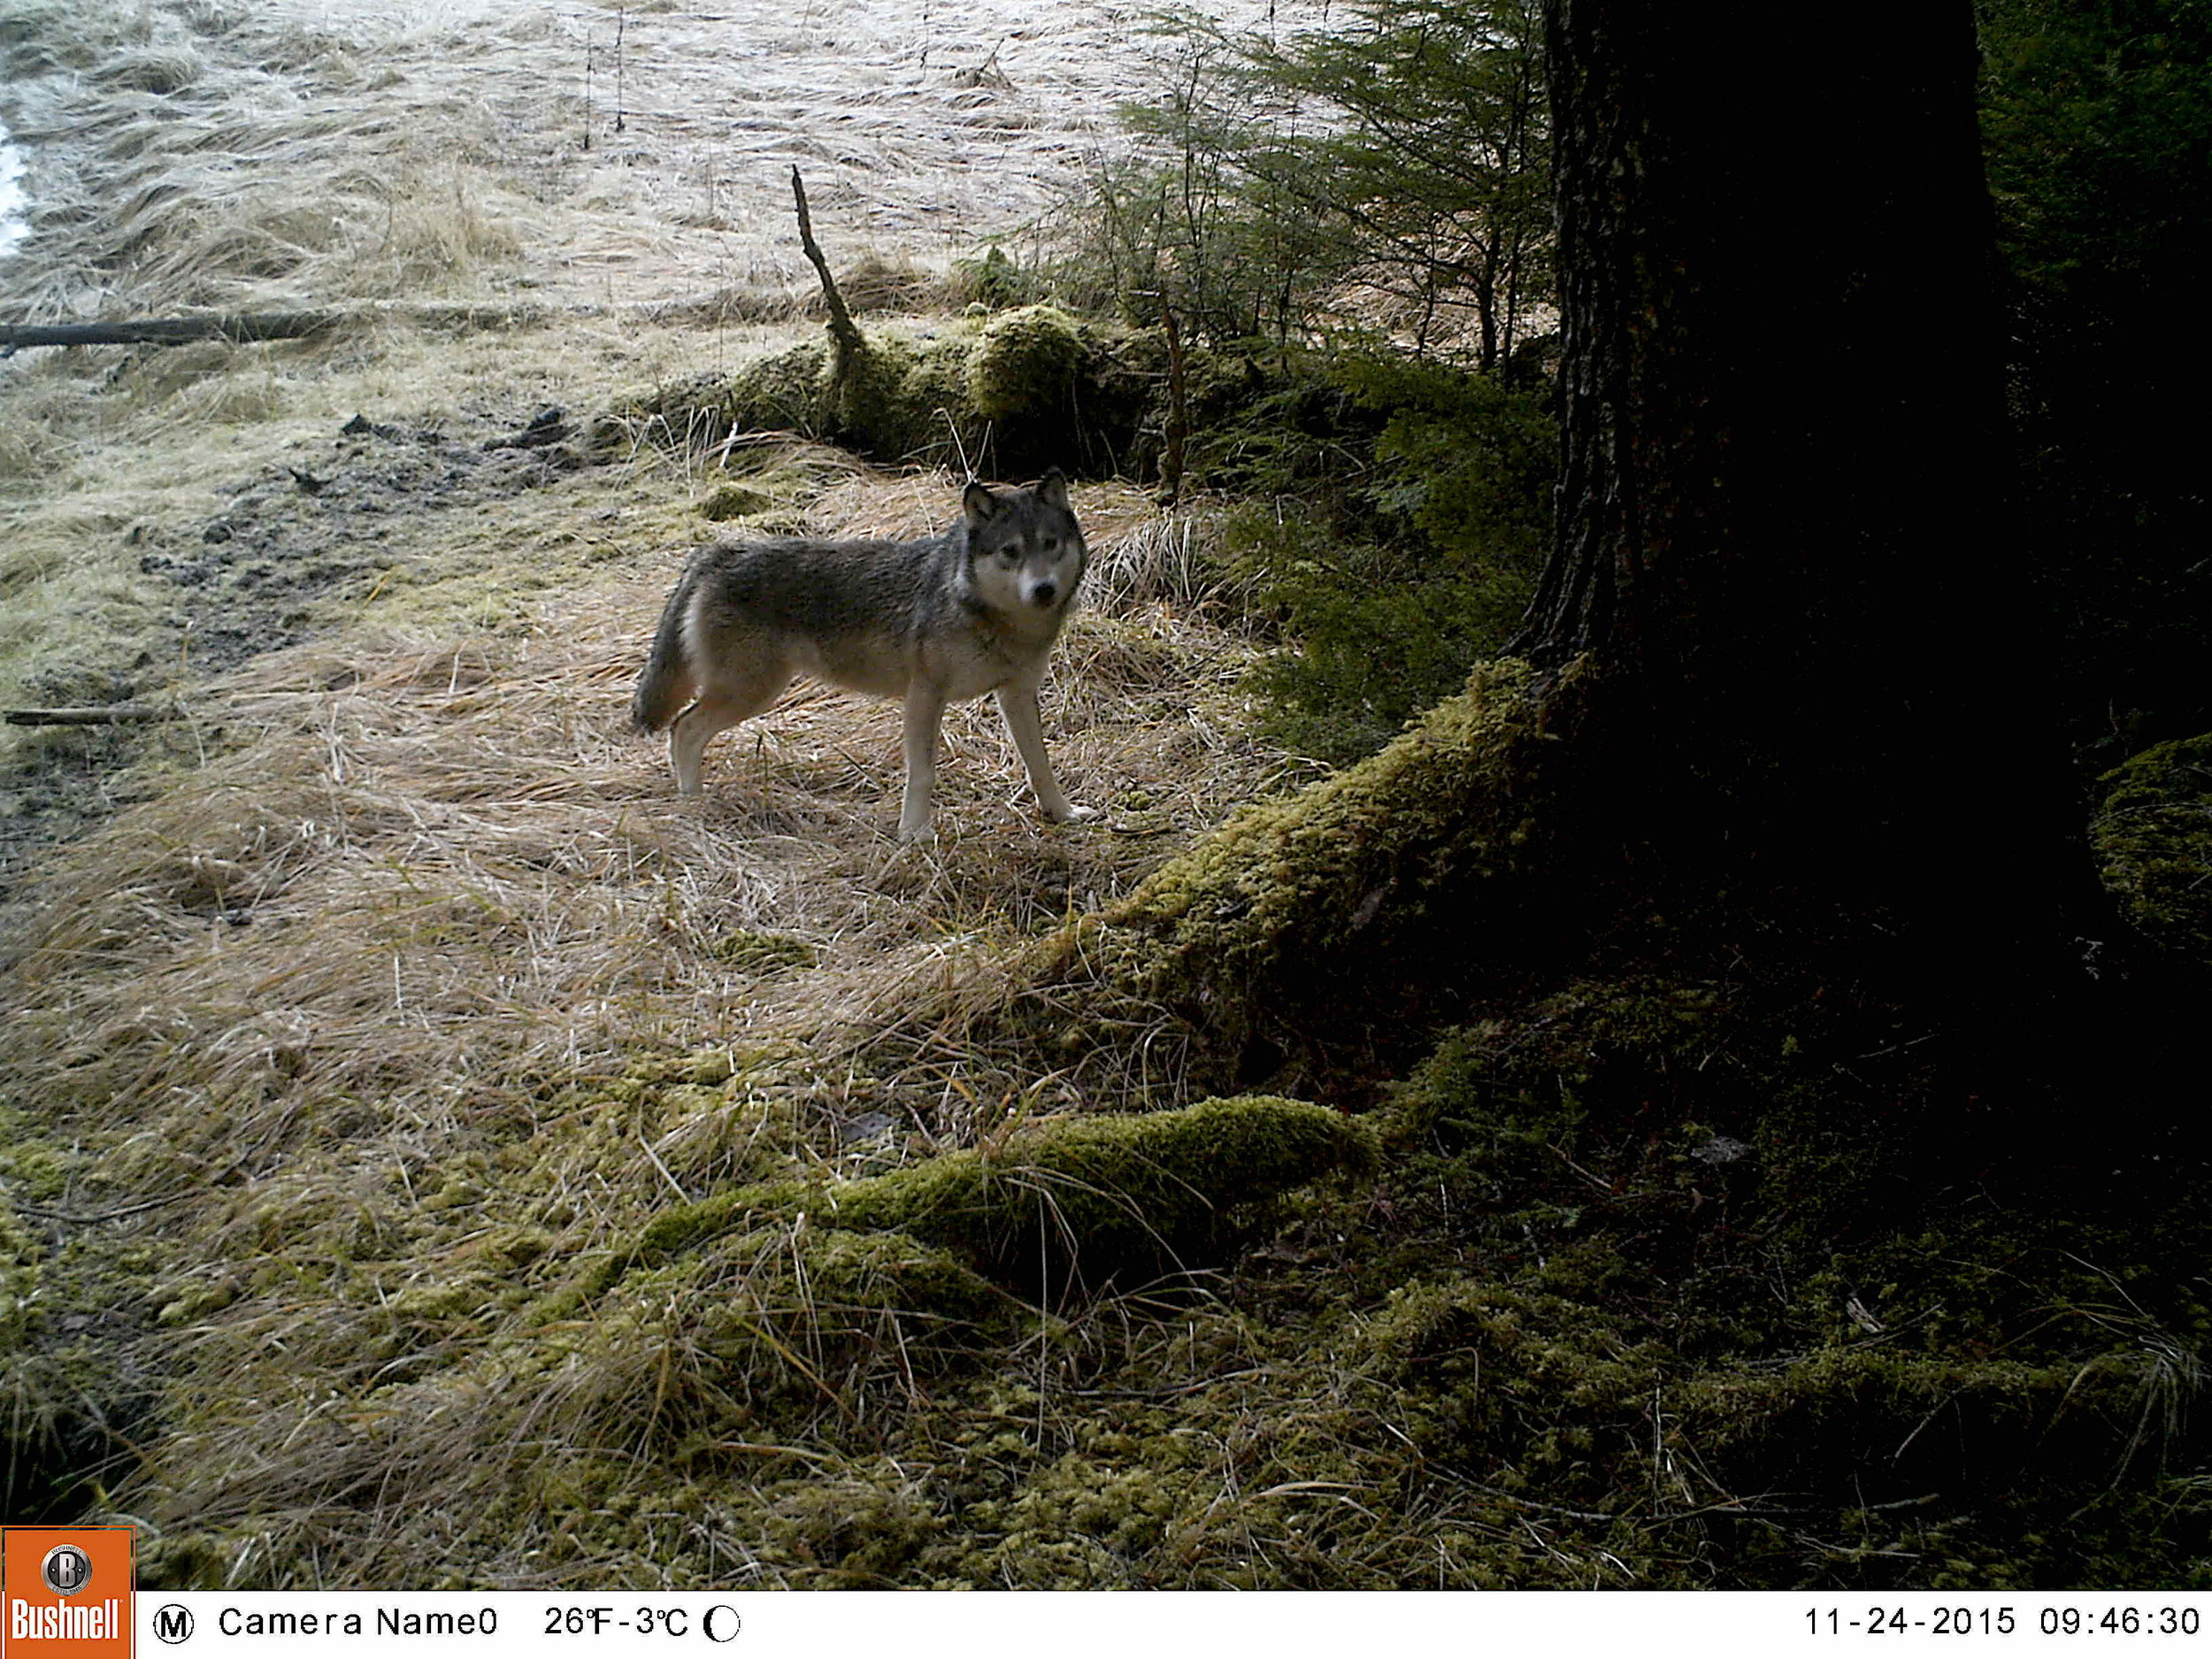 Day 3. The Wolves of Prince of Wales Island, Tracking & Data Collection